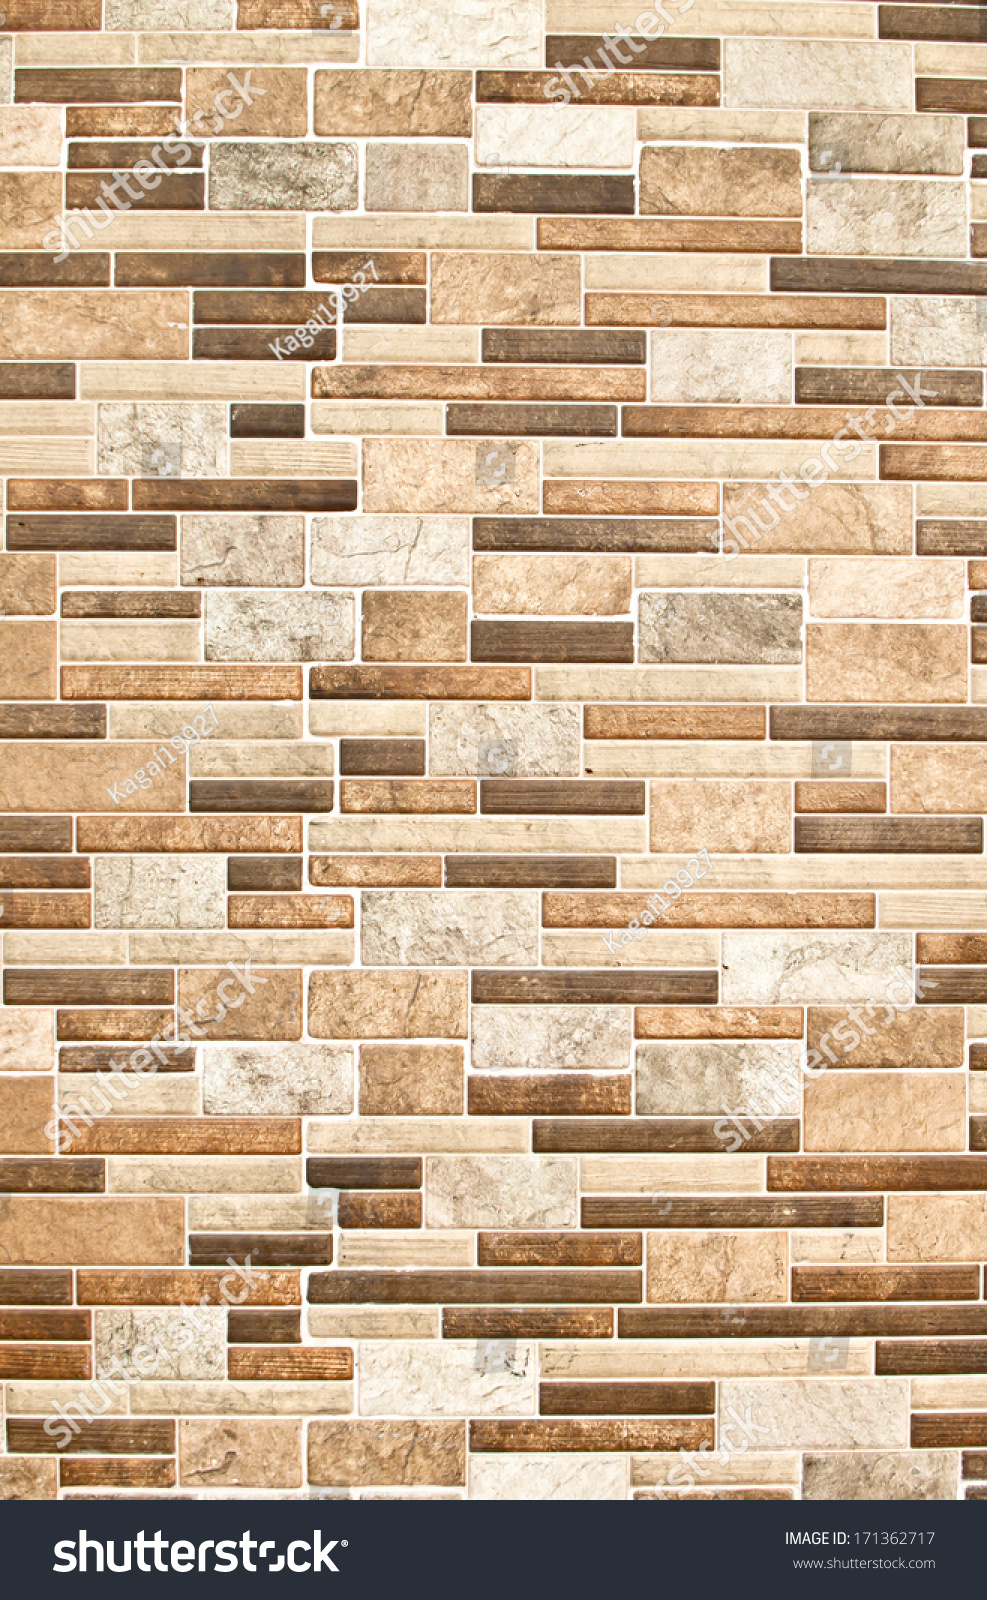 Modern Ceramic Tile Wall Construction Wall Stock Photo 171362717 Shutterstock